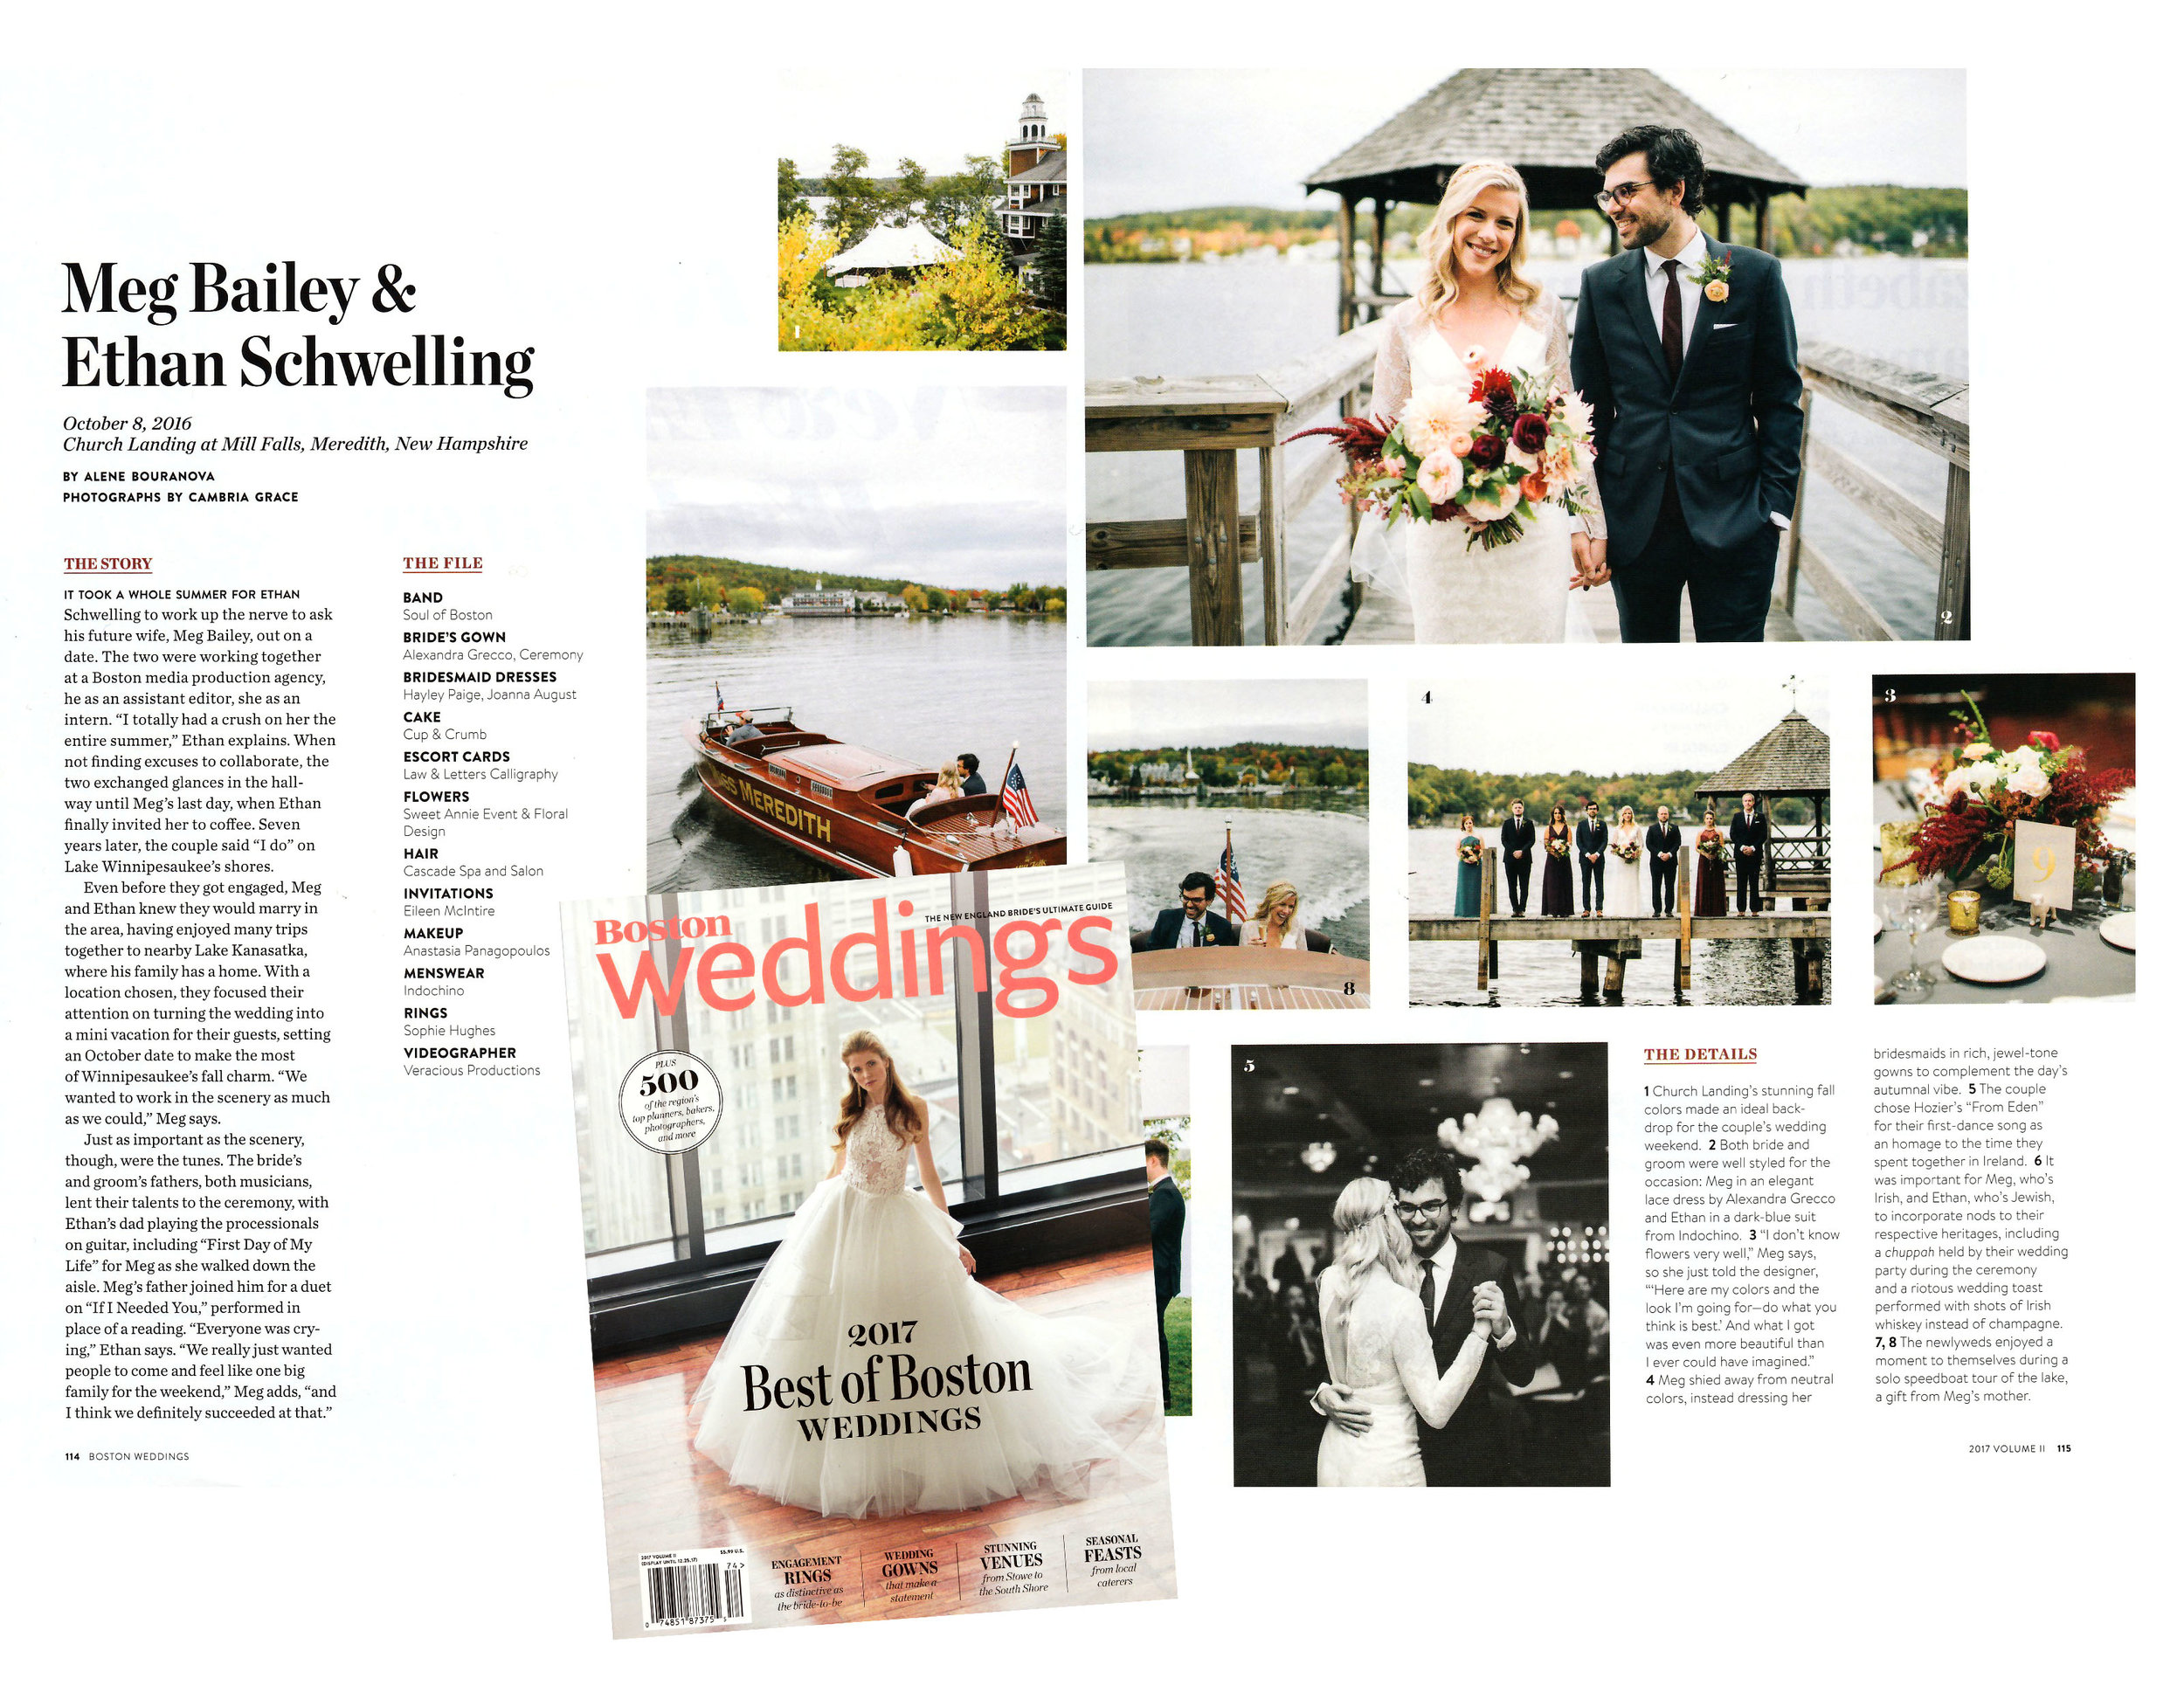 BostonWeddings2017_Mockup02.jpg